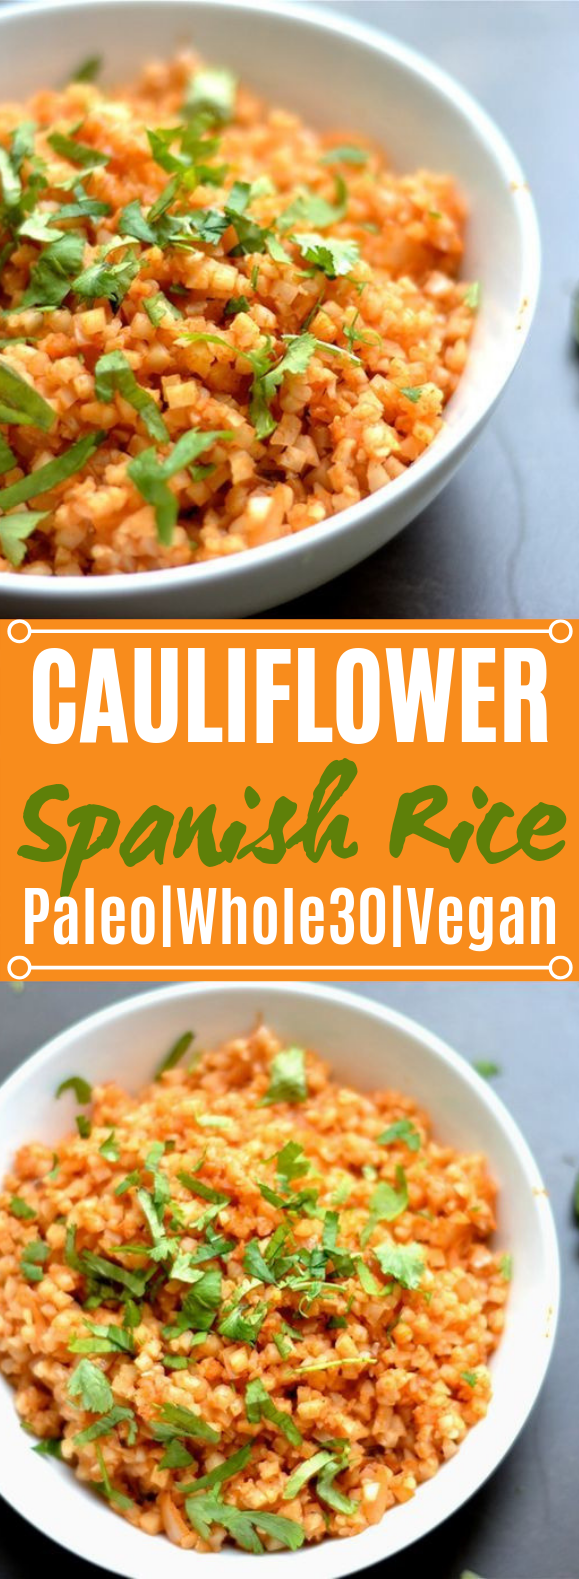 Cauliflower Spanish Rice #healthy #paleo